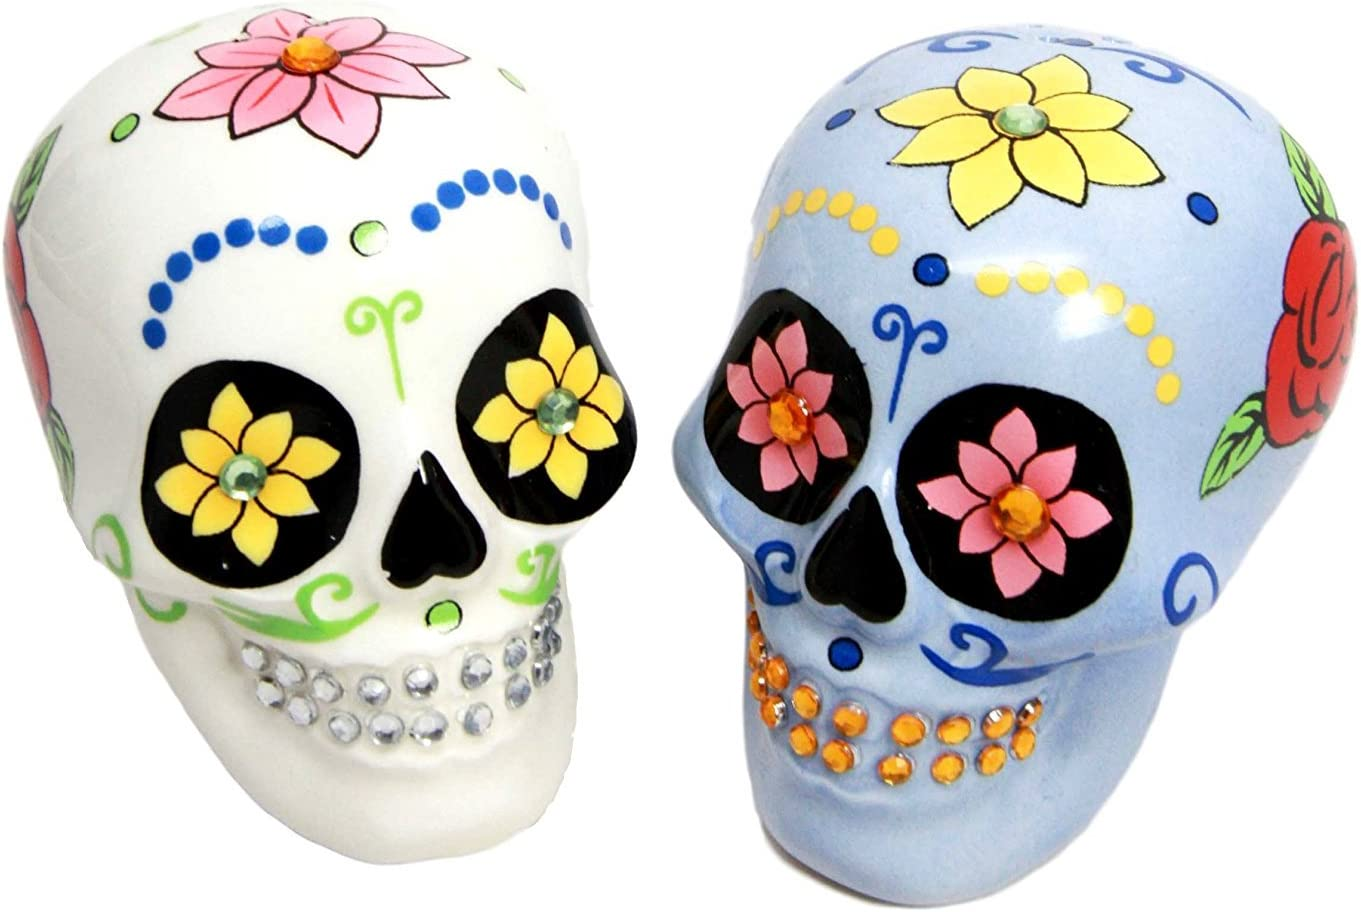 Day of the Dead White and Blue Sugar Skull Design Salt and Pepper Shakers Set Pacific Trading COMINHKPR60716